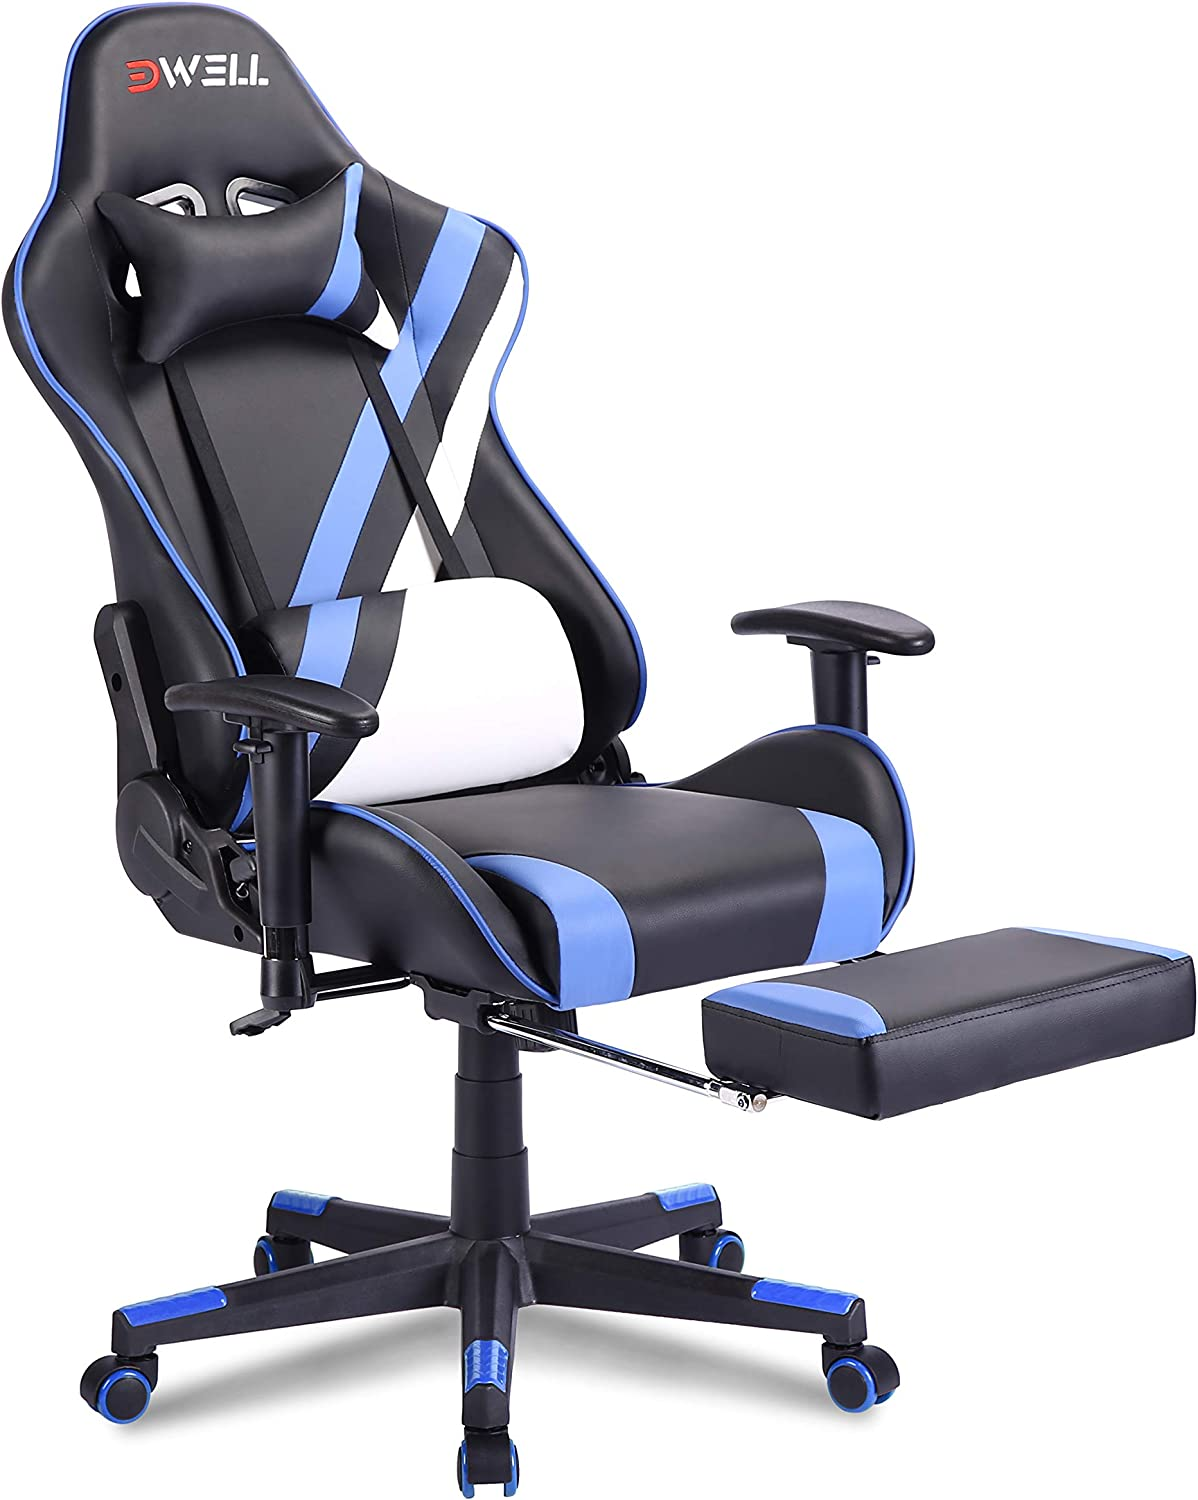 EDWELL Oakland Mall Gaming Chair Computer Ad footrest with Max 87% OFF